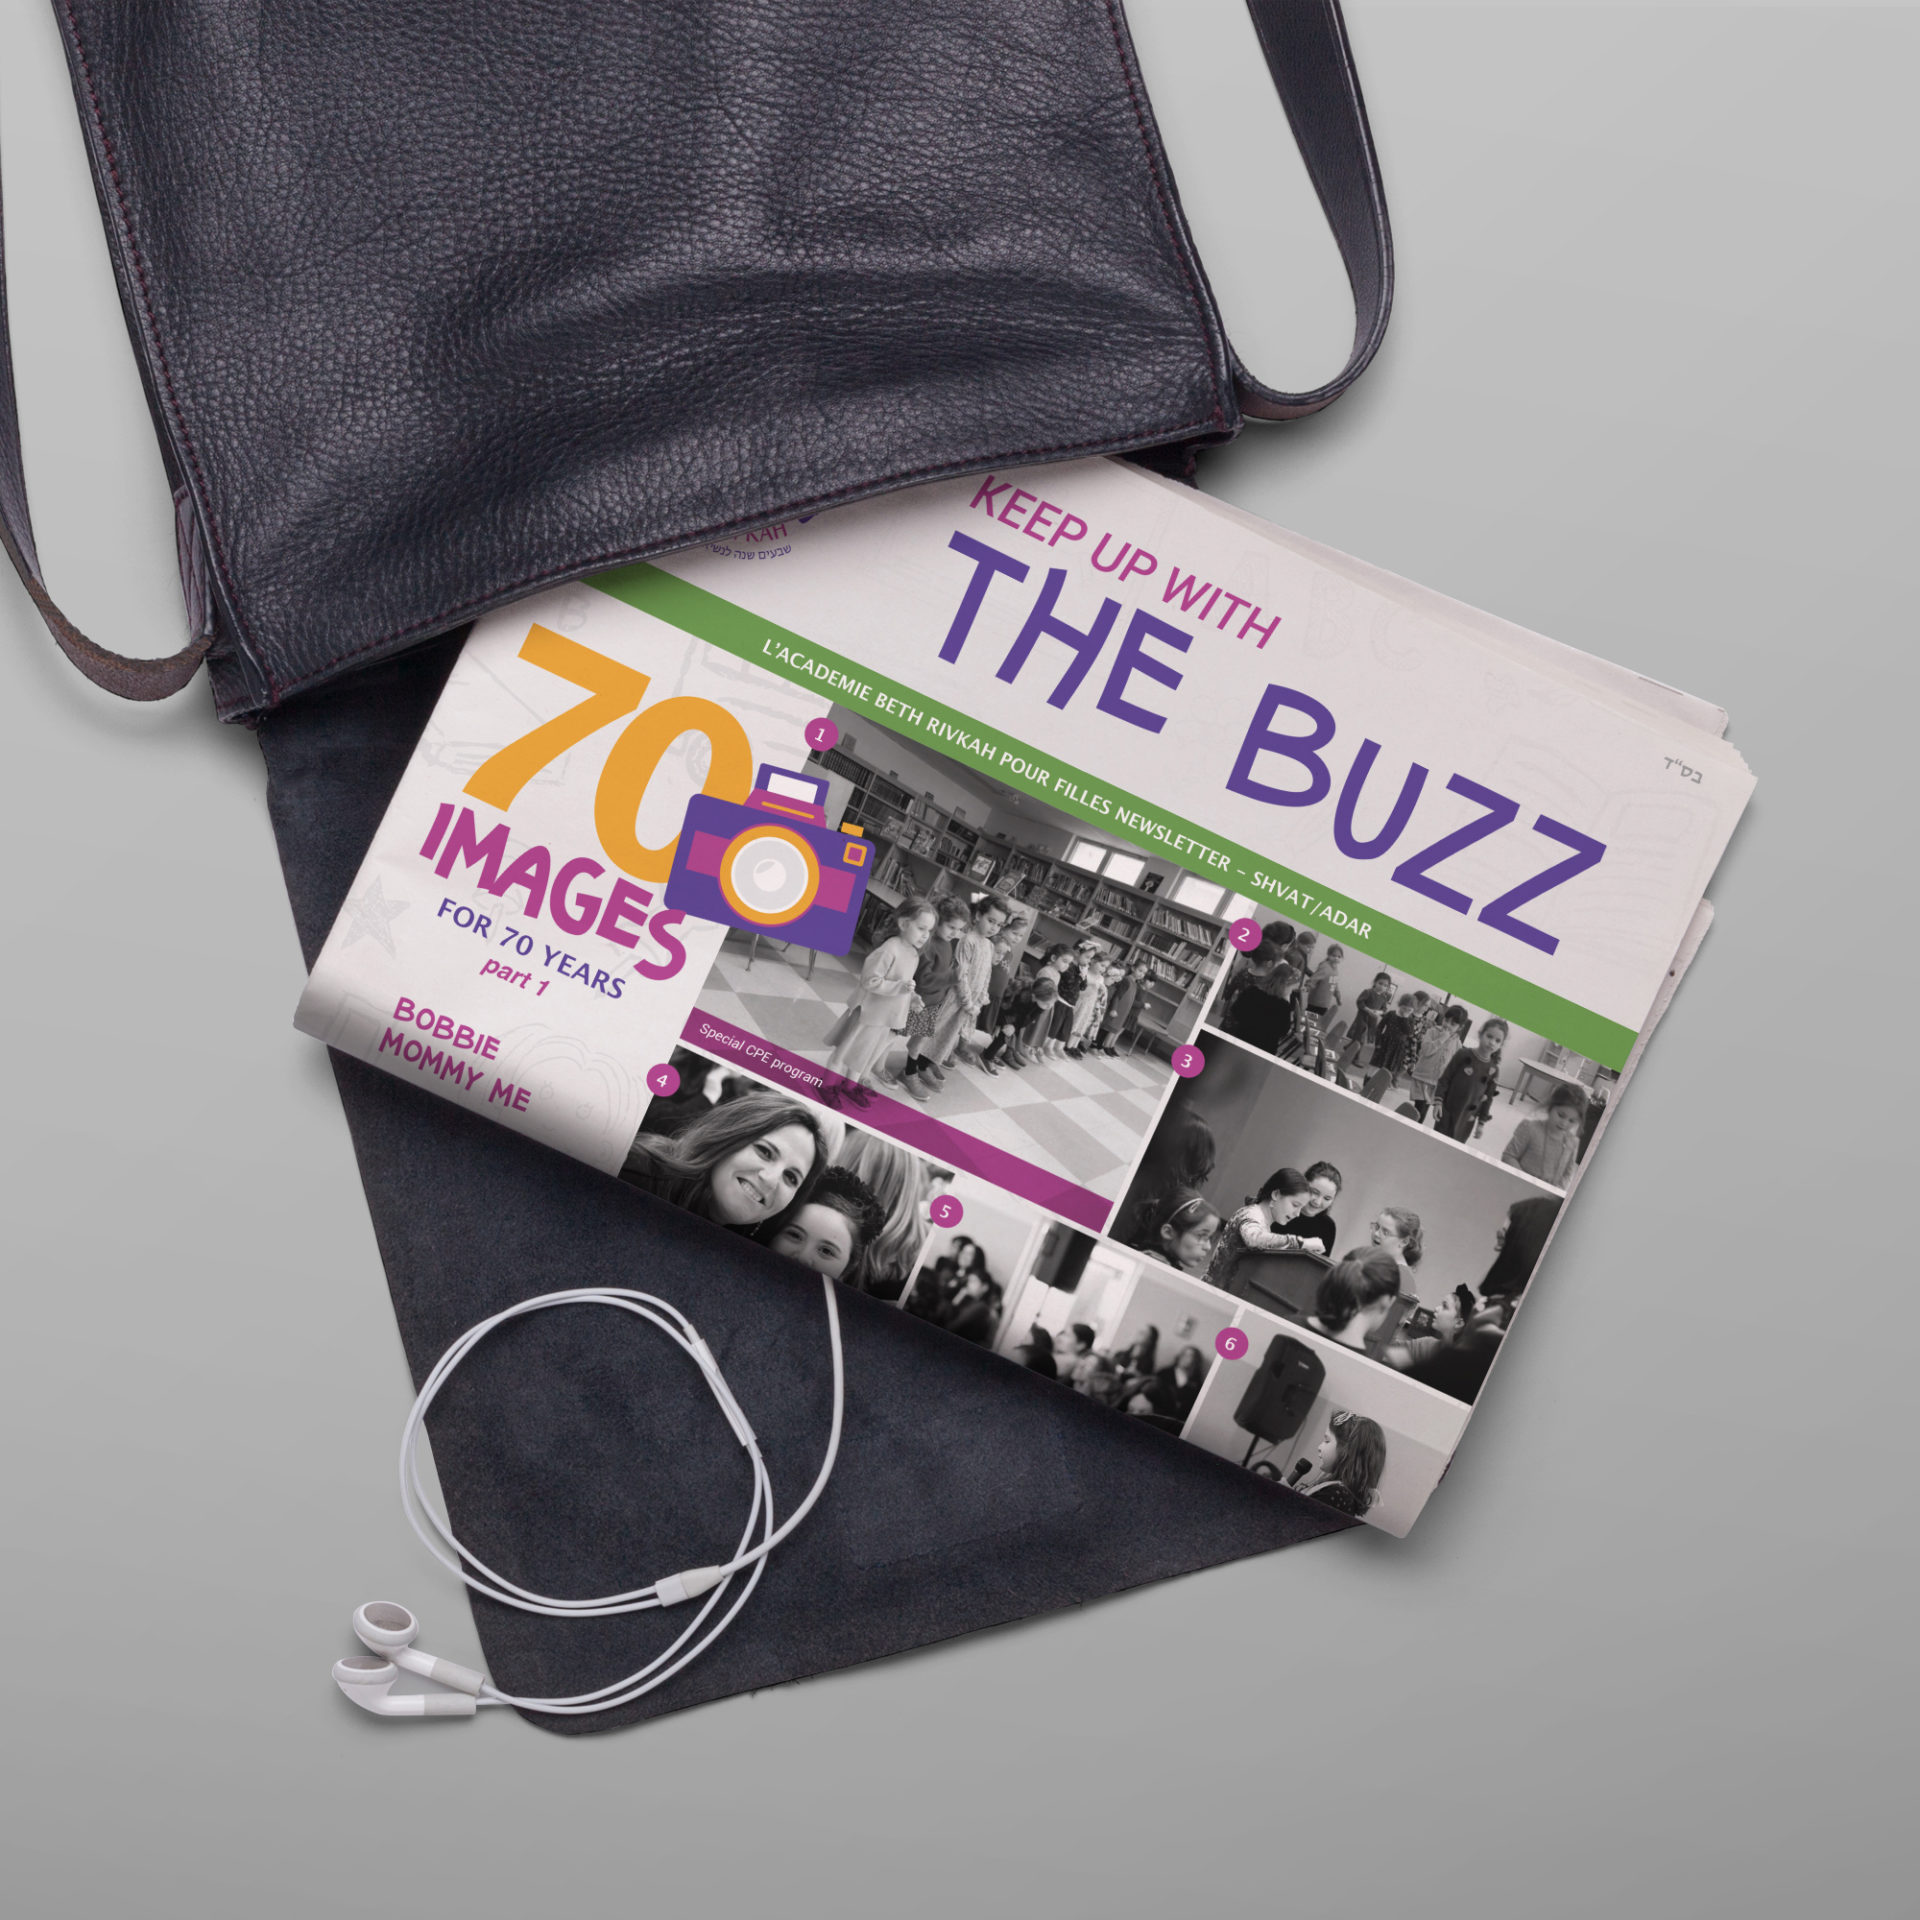 Beth Rivkah Academy's 'The Buzz' Newsletter in school bag.